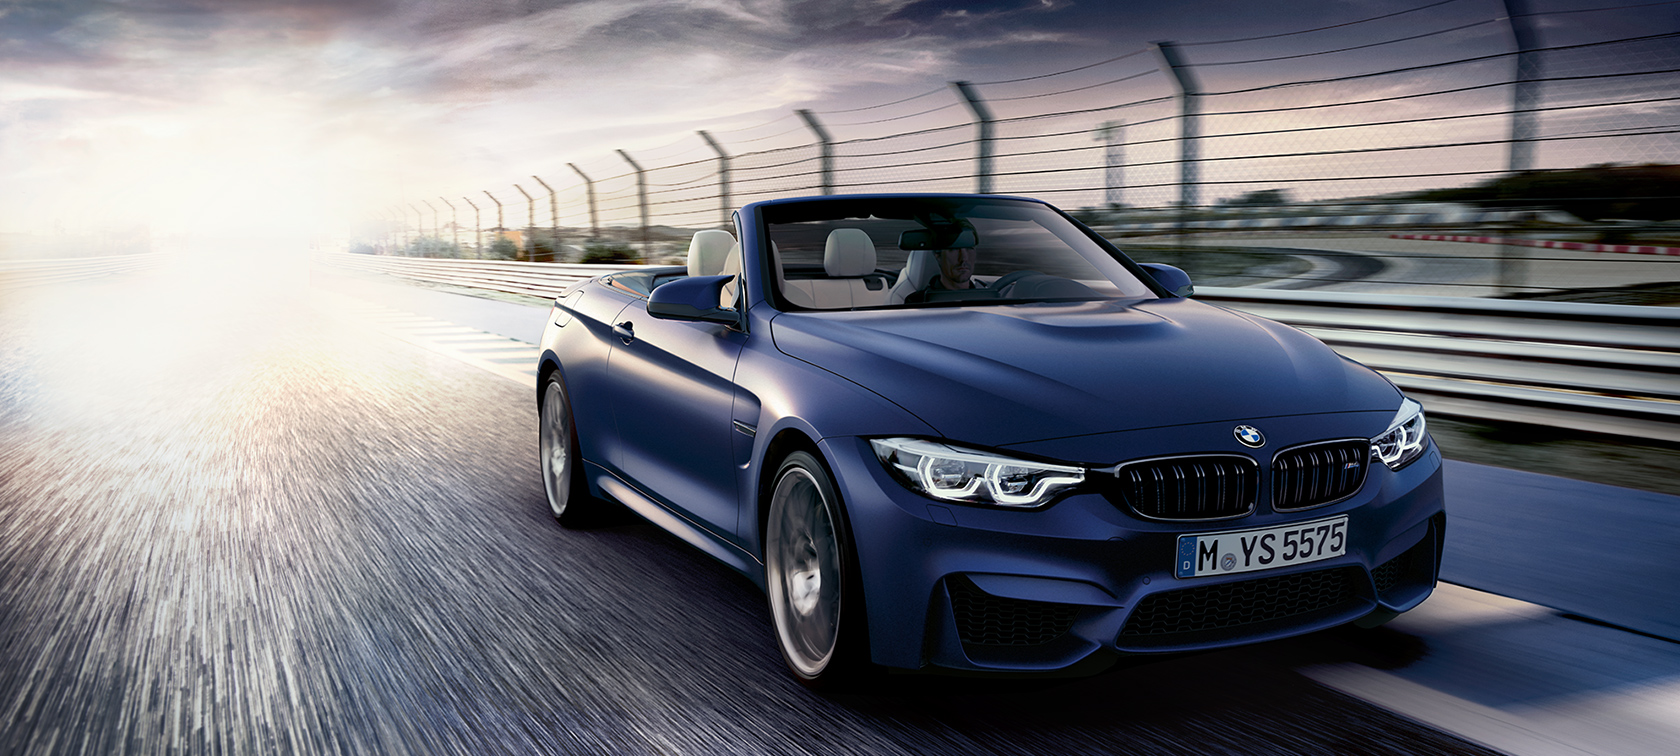 BMW M-Series M4 Convertible dark blue: fast moving car on highway